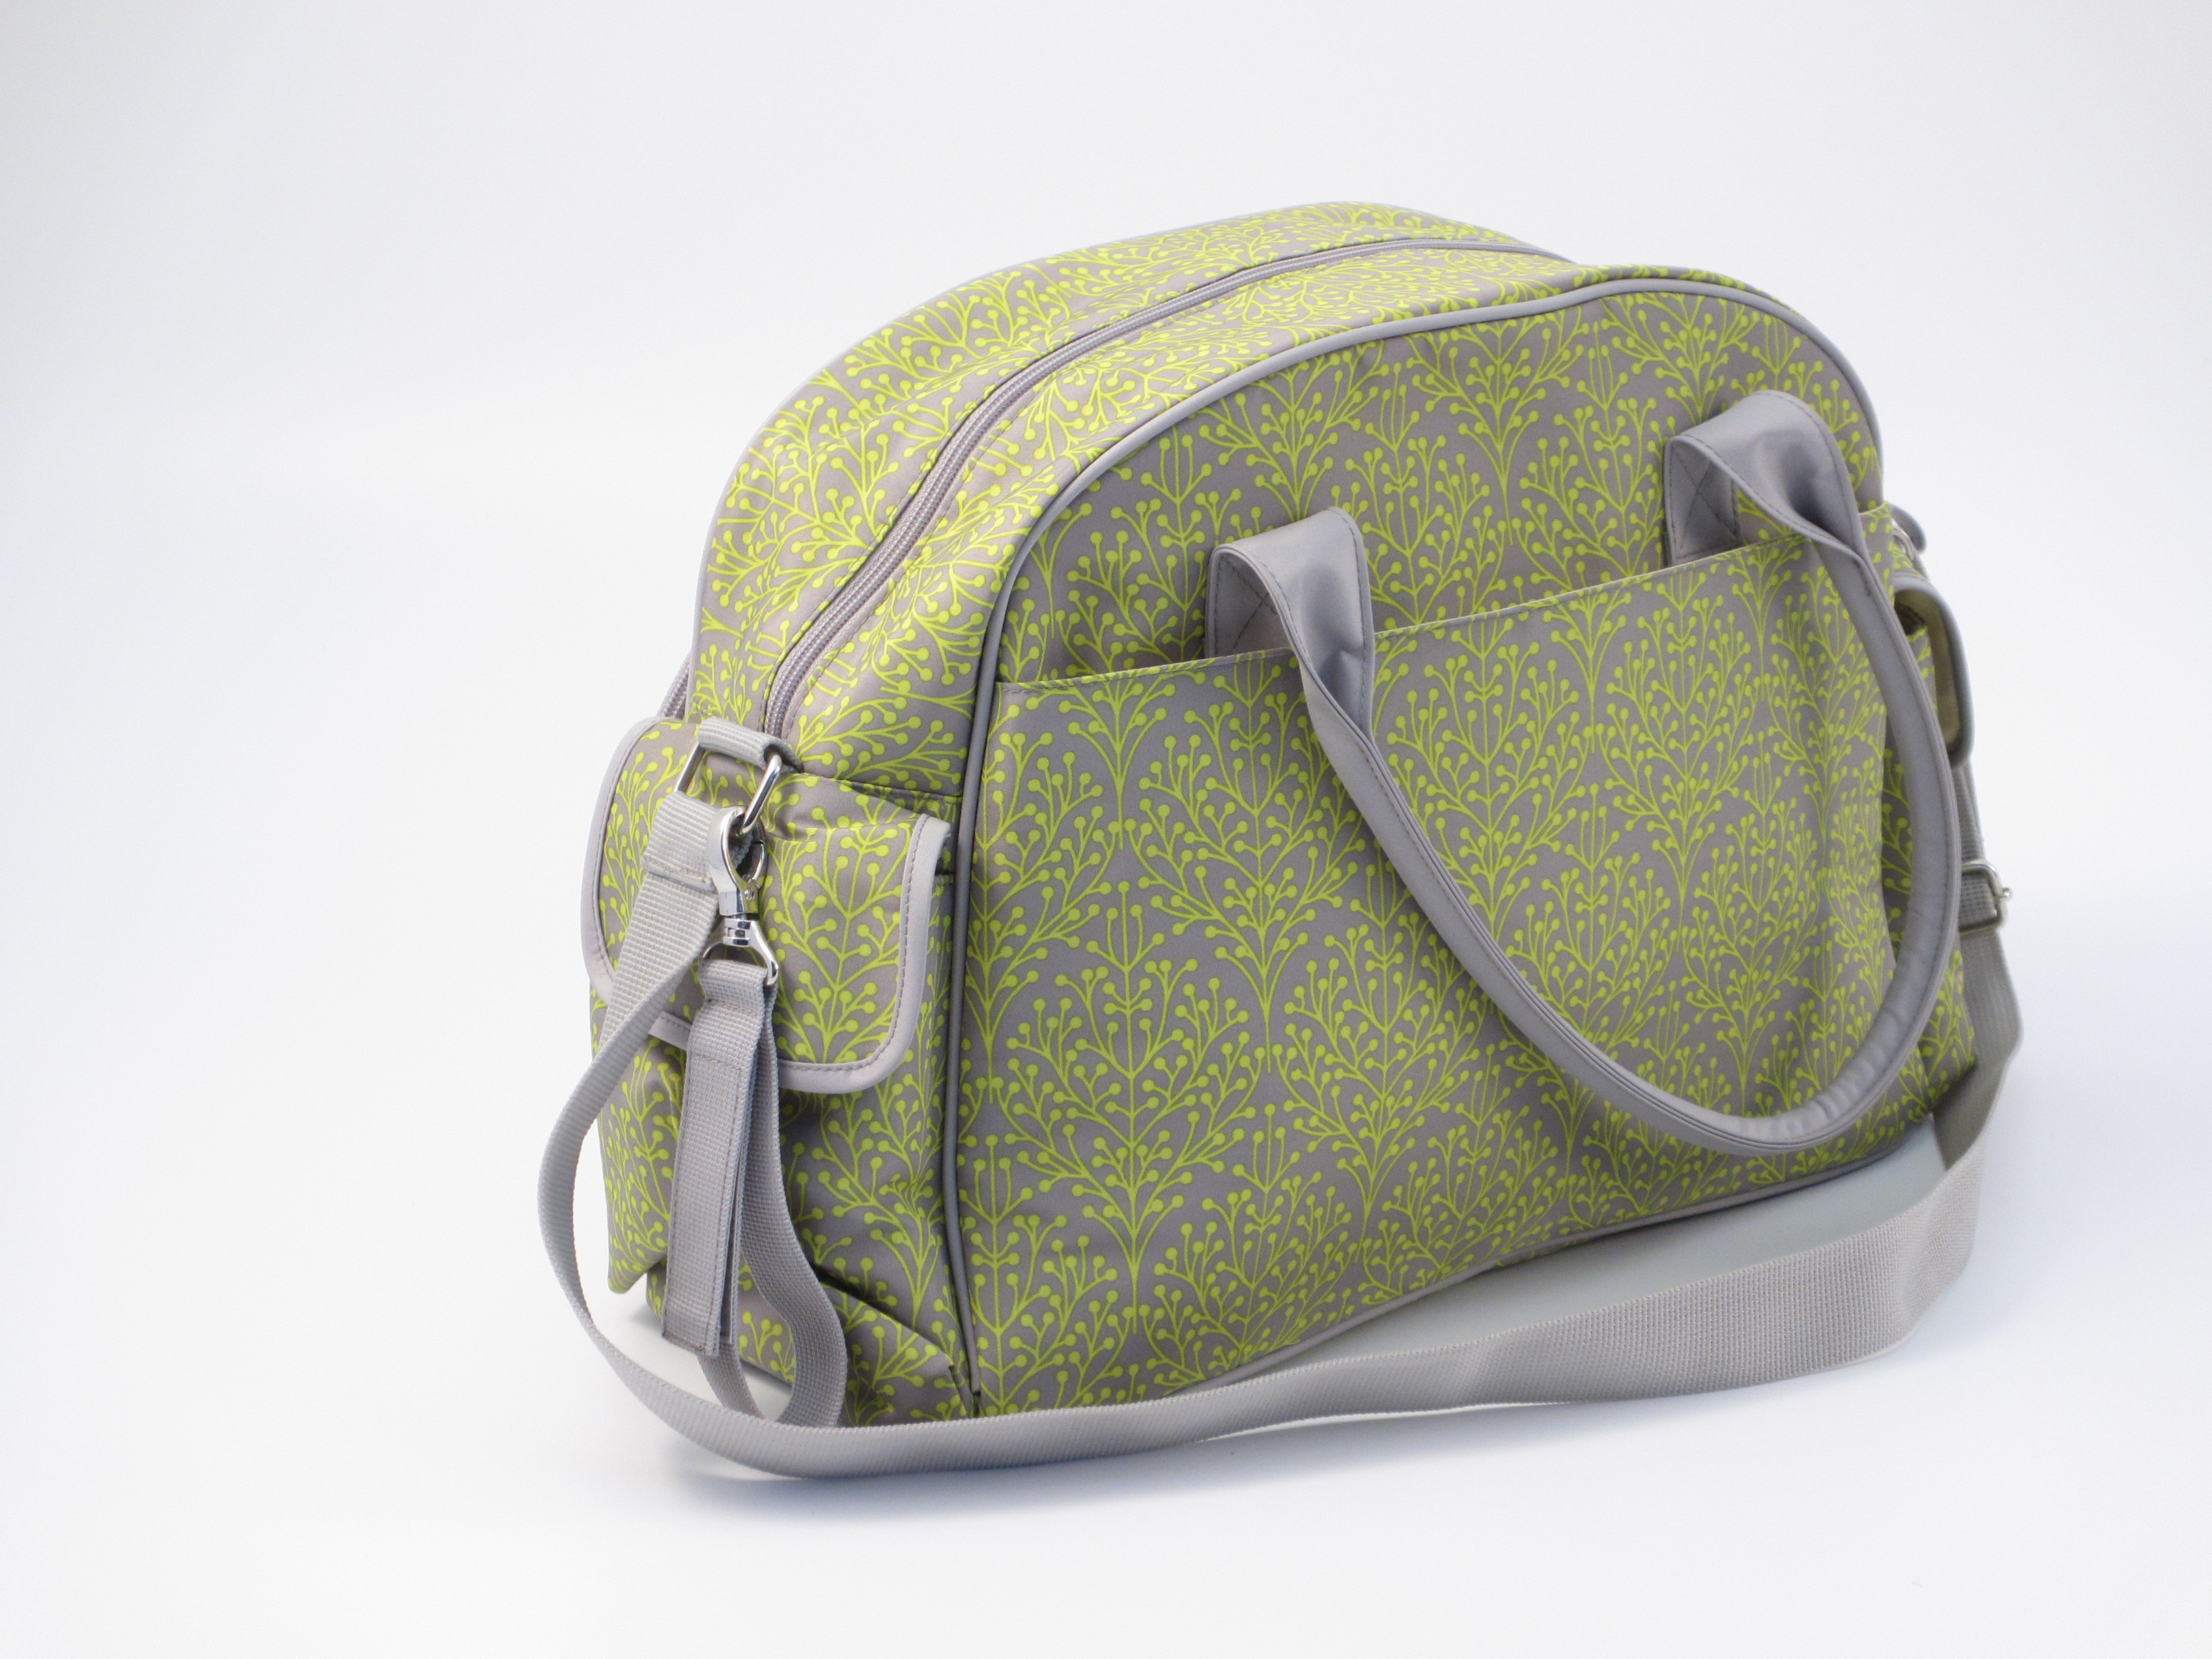 ba7c609ee1a43 Changing Bags Archives - Summer Infant baby products